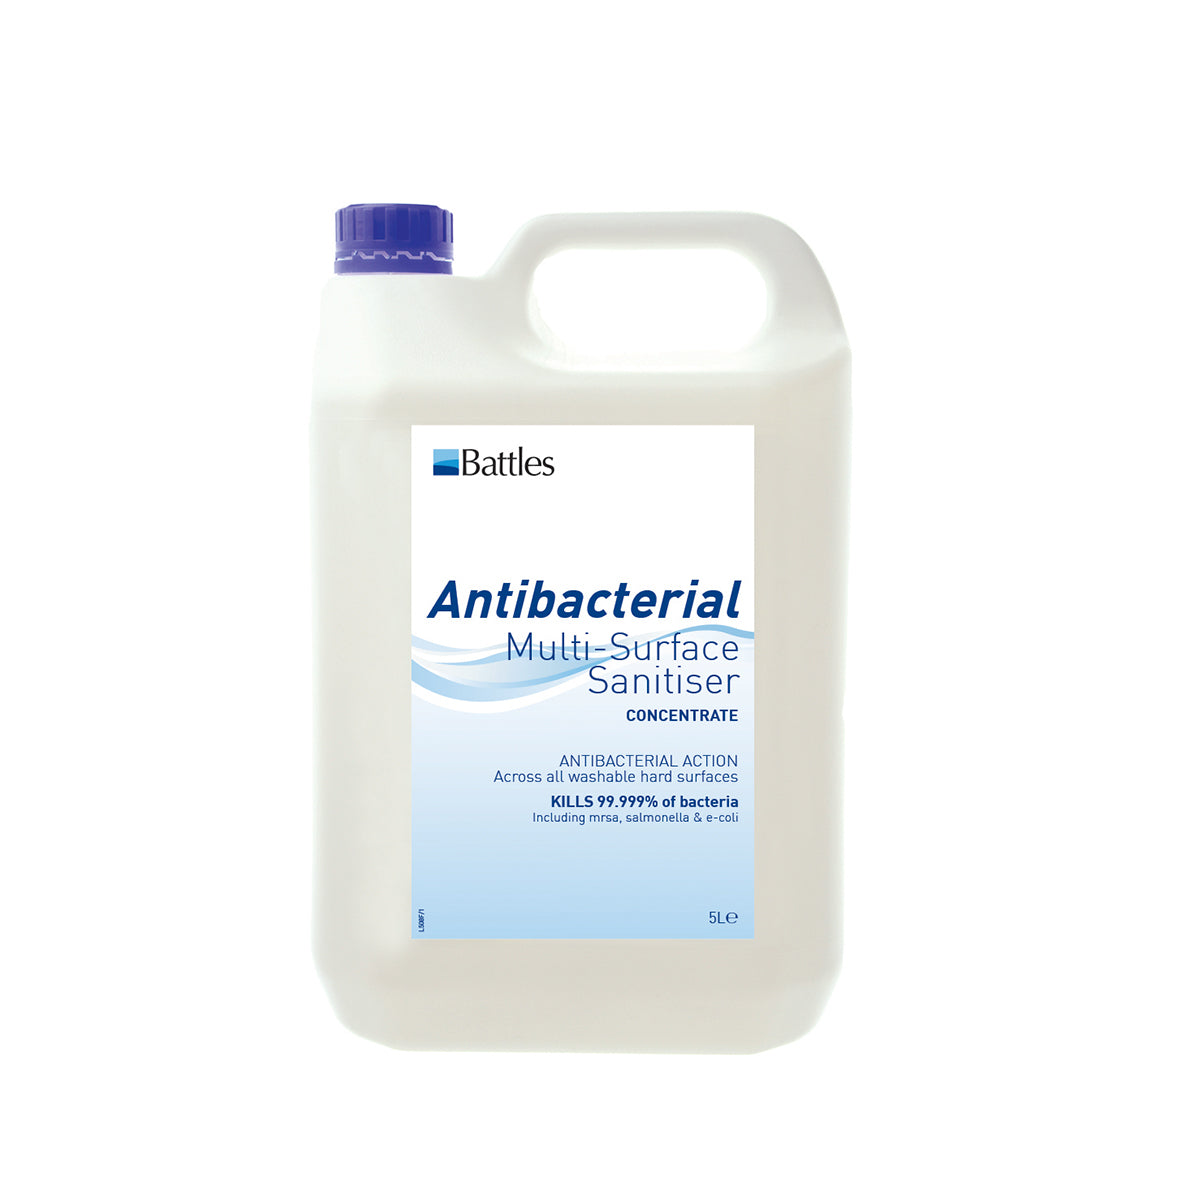 Battles Anti-Bacterial Multi-Surface Sanitiser (Ready To Use)